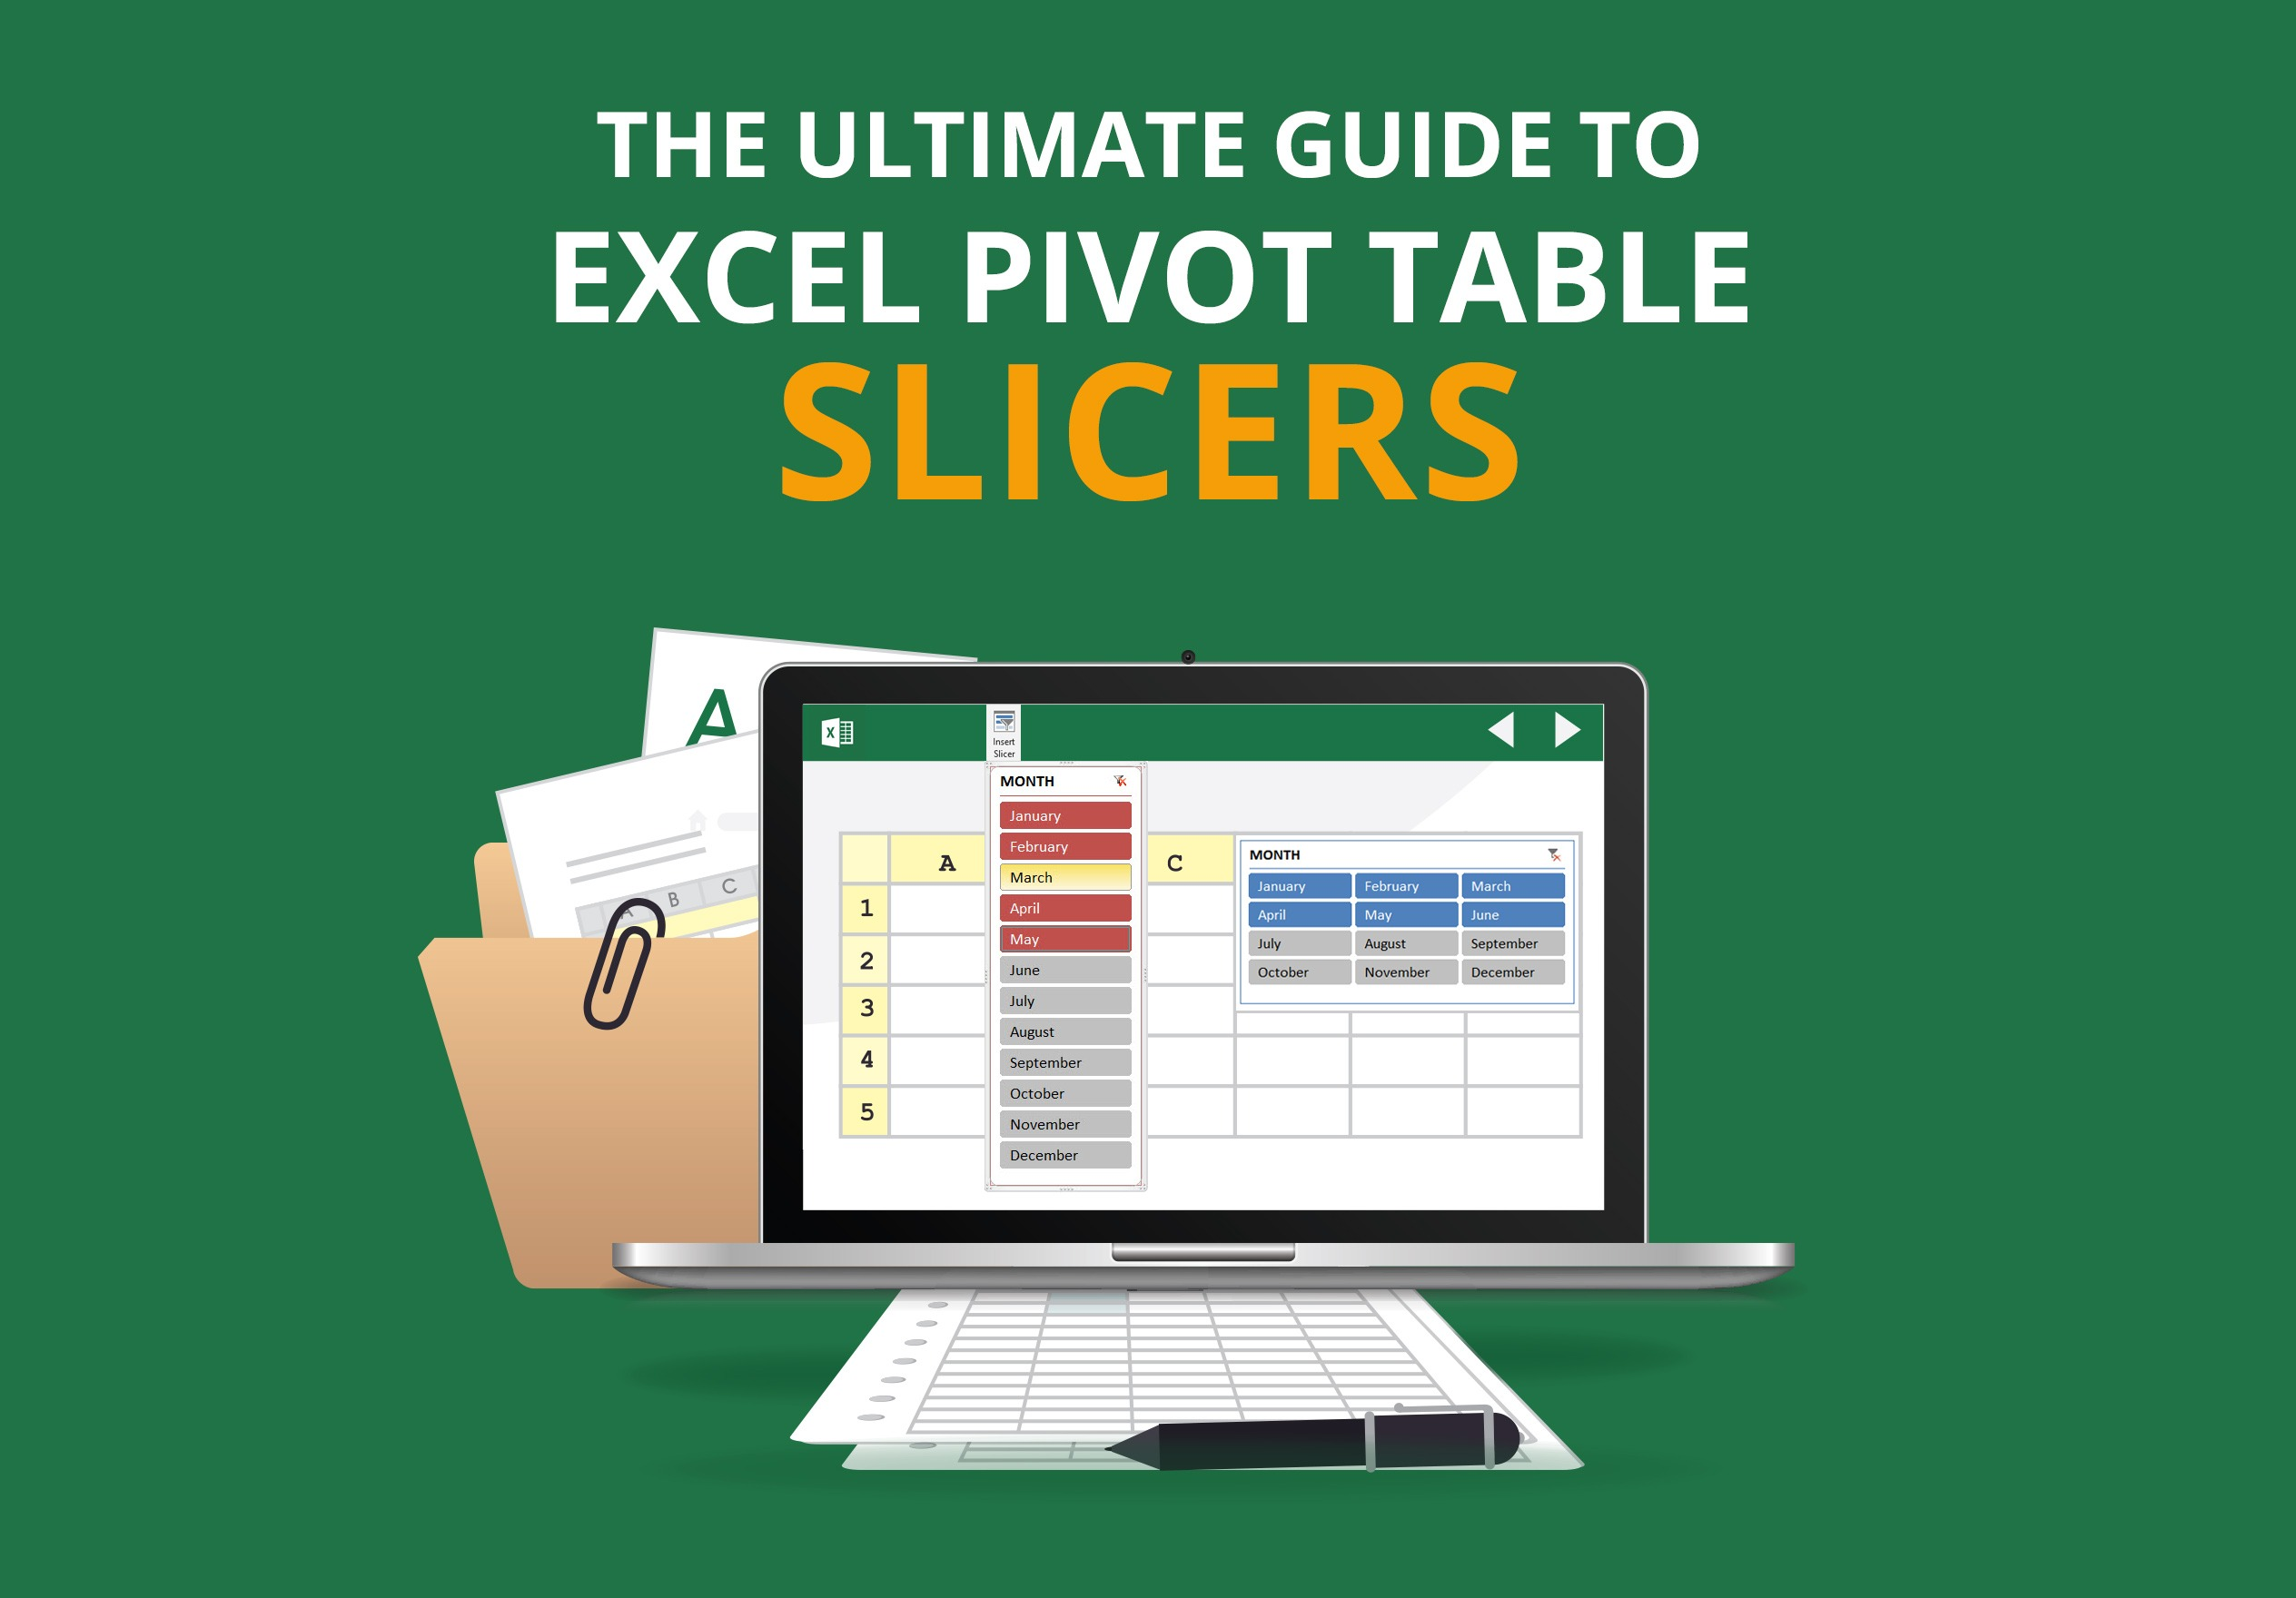 The Ultimate Guide To Excel Pivot Table Slicers